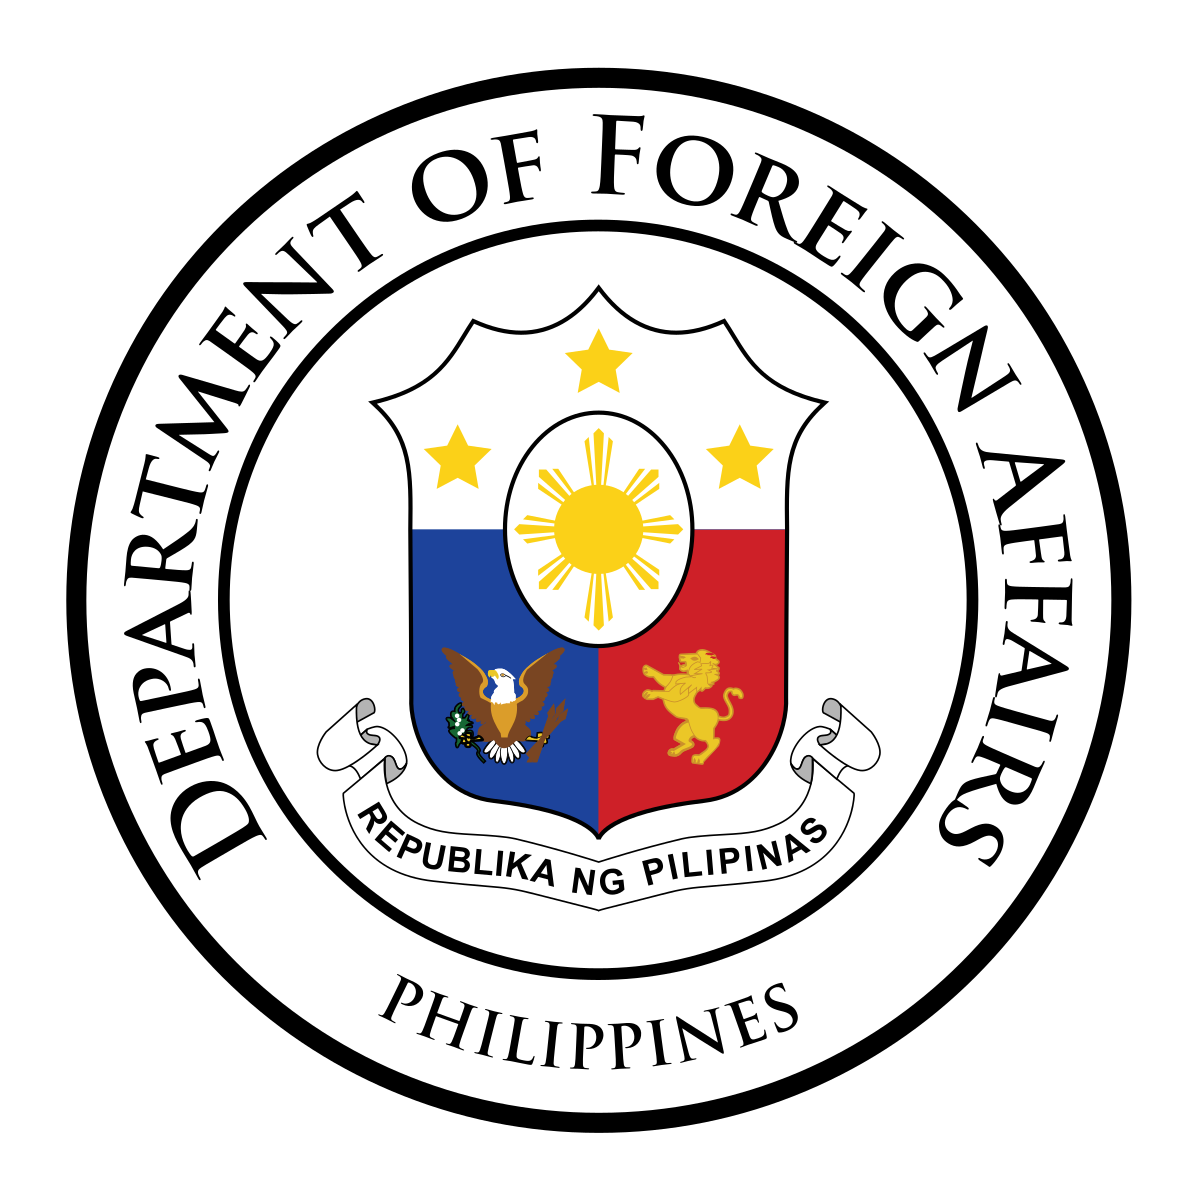 Forms and Guides from Department of Foreign Affairs (DFA) Philippines.